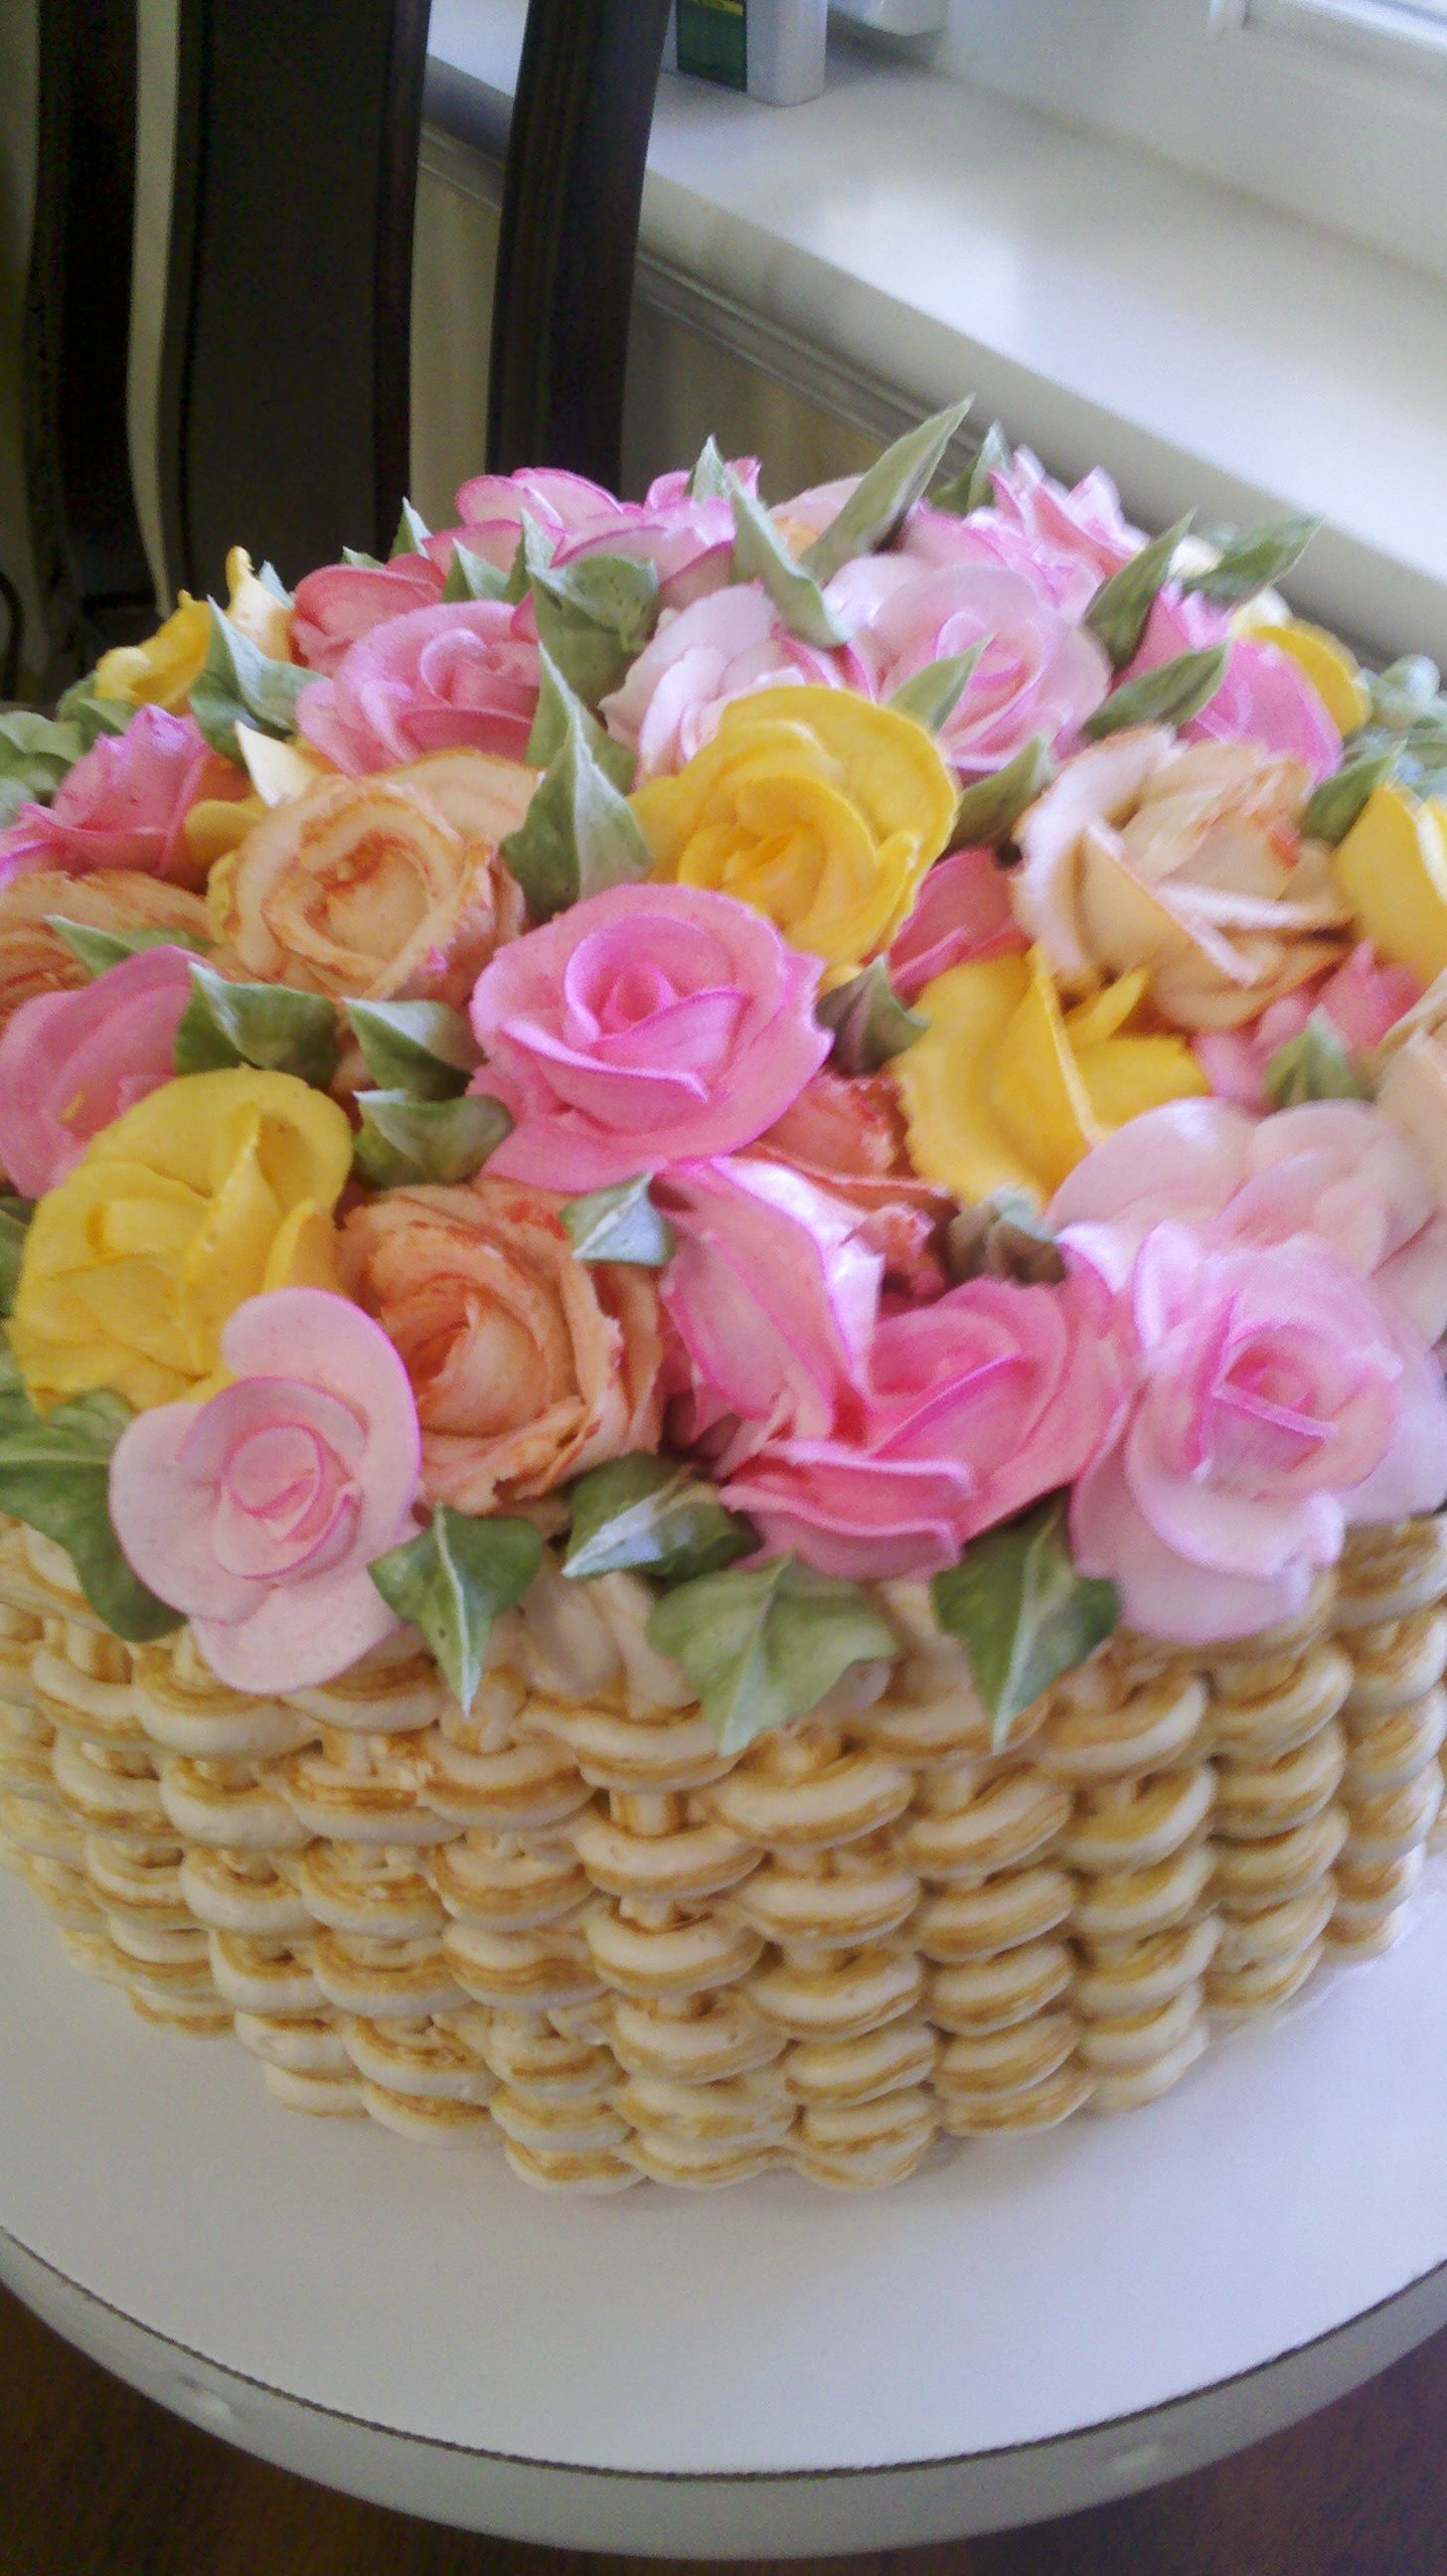 Flower Basket Cake Easter Cake Decorating Flower Basket Cake Cake